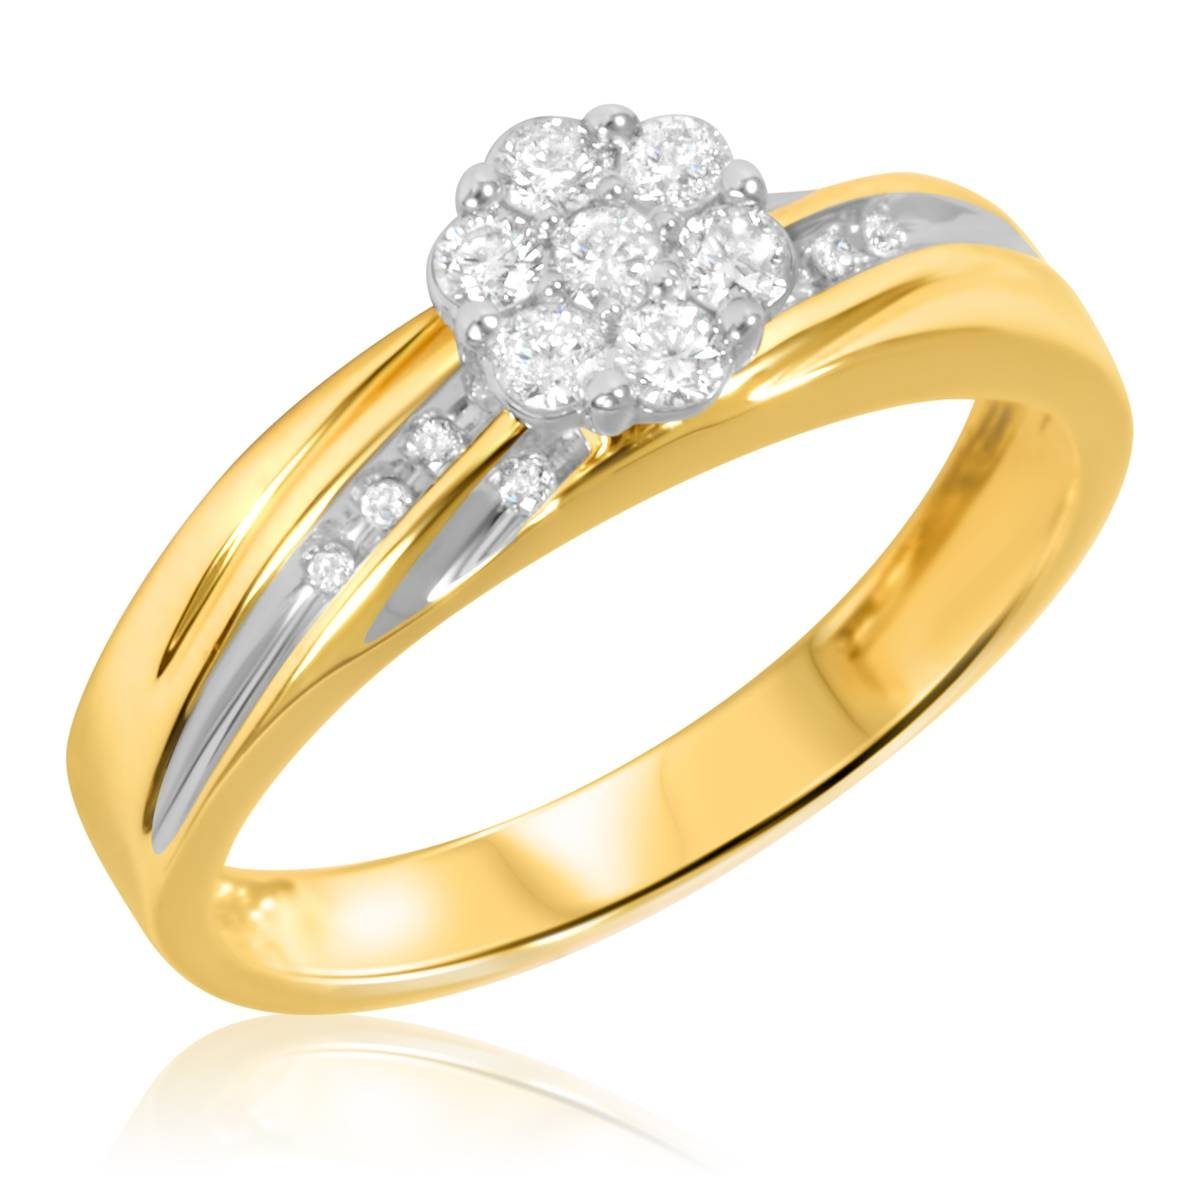 1/4 Carat T.w. Diamond Ladies' Engagement Ring 14K Yellow Gold With Regard To Engagement Rings Designs For Women (Gallery 6 of 15)